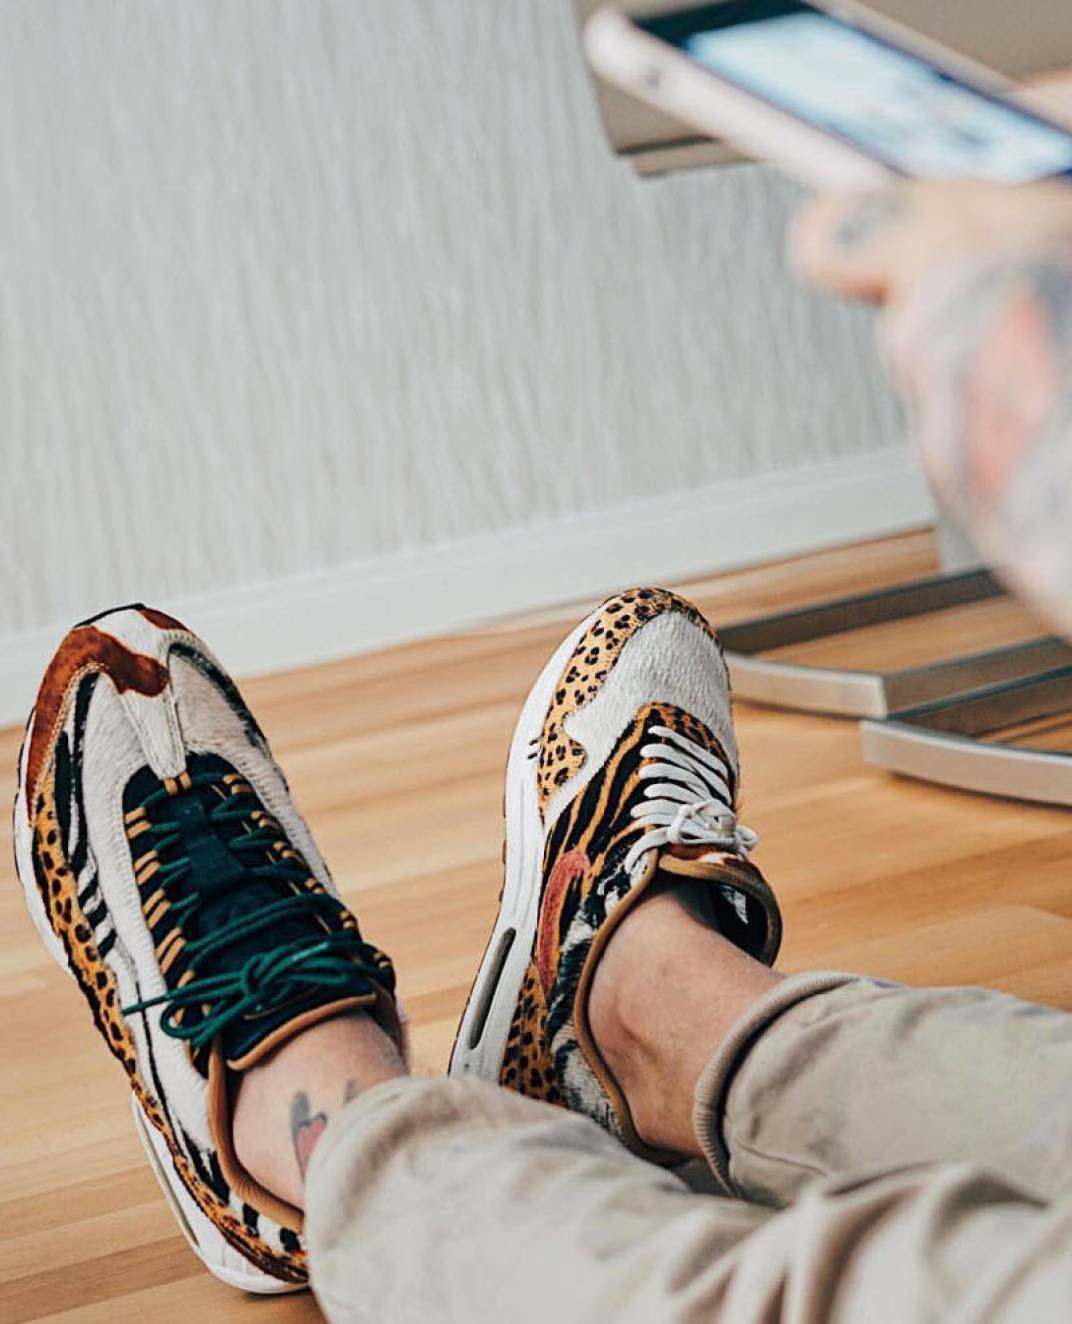 085c617a7cf The 25 Best Sneakers of the Year So Far